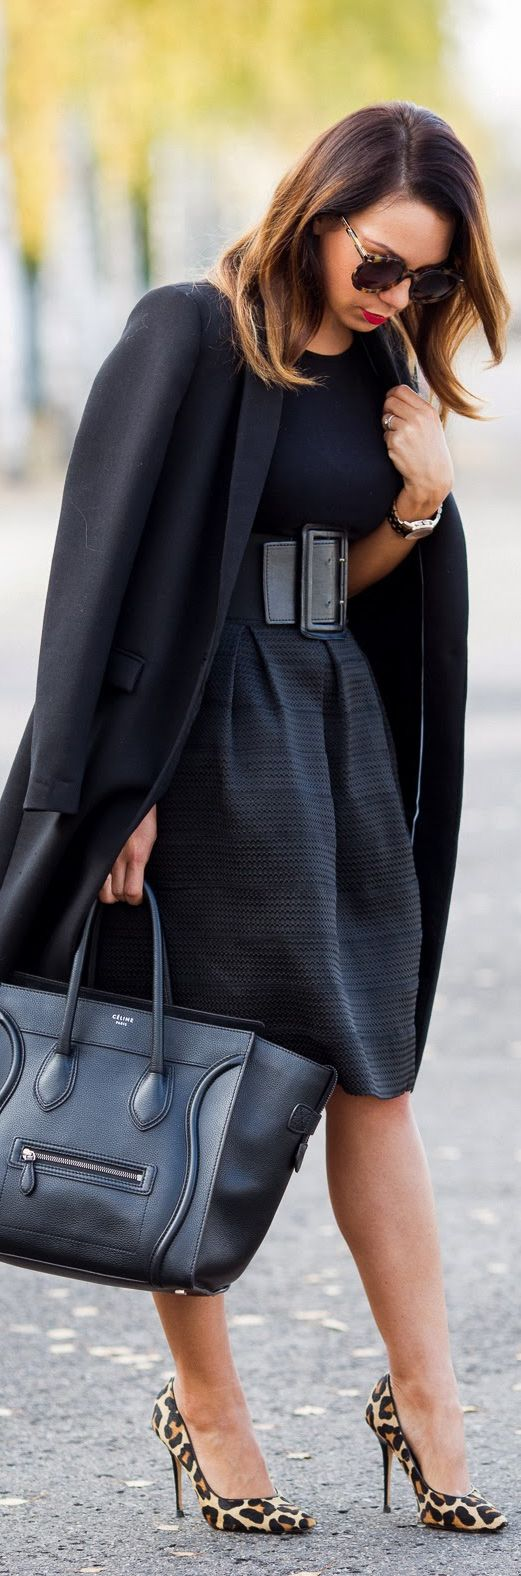 Great for work. Love the wide belt with this fab skirt and form fitting top! All black ......yes please!: